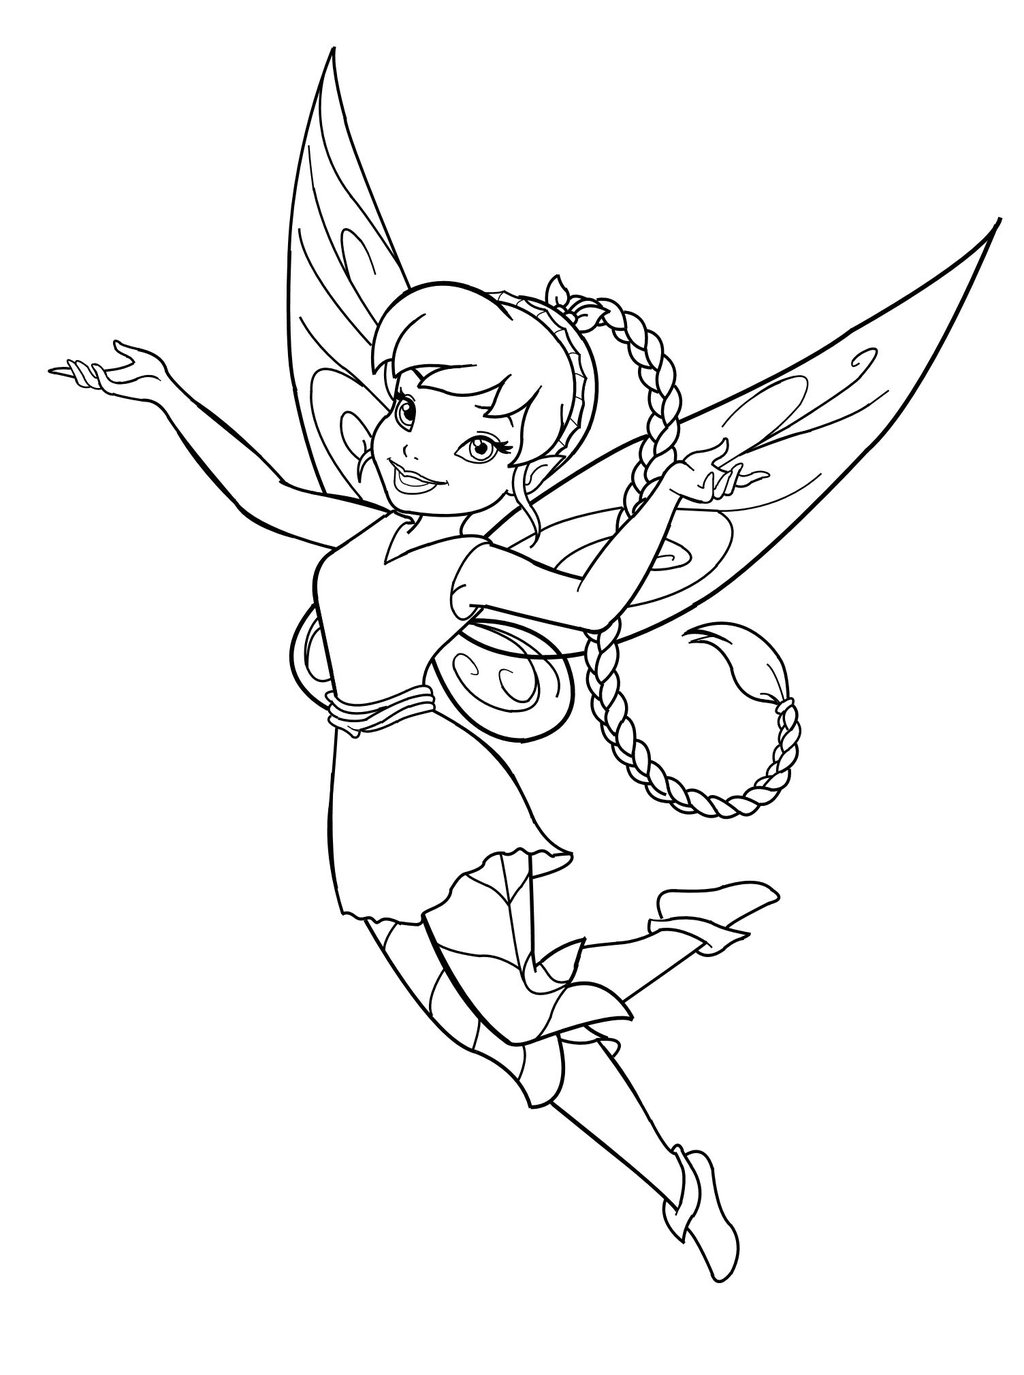 Free Printable Disney Fairies Coloring